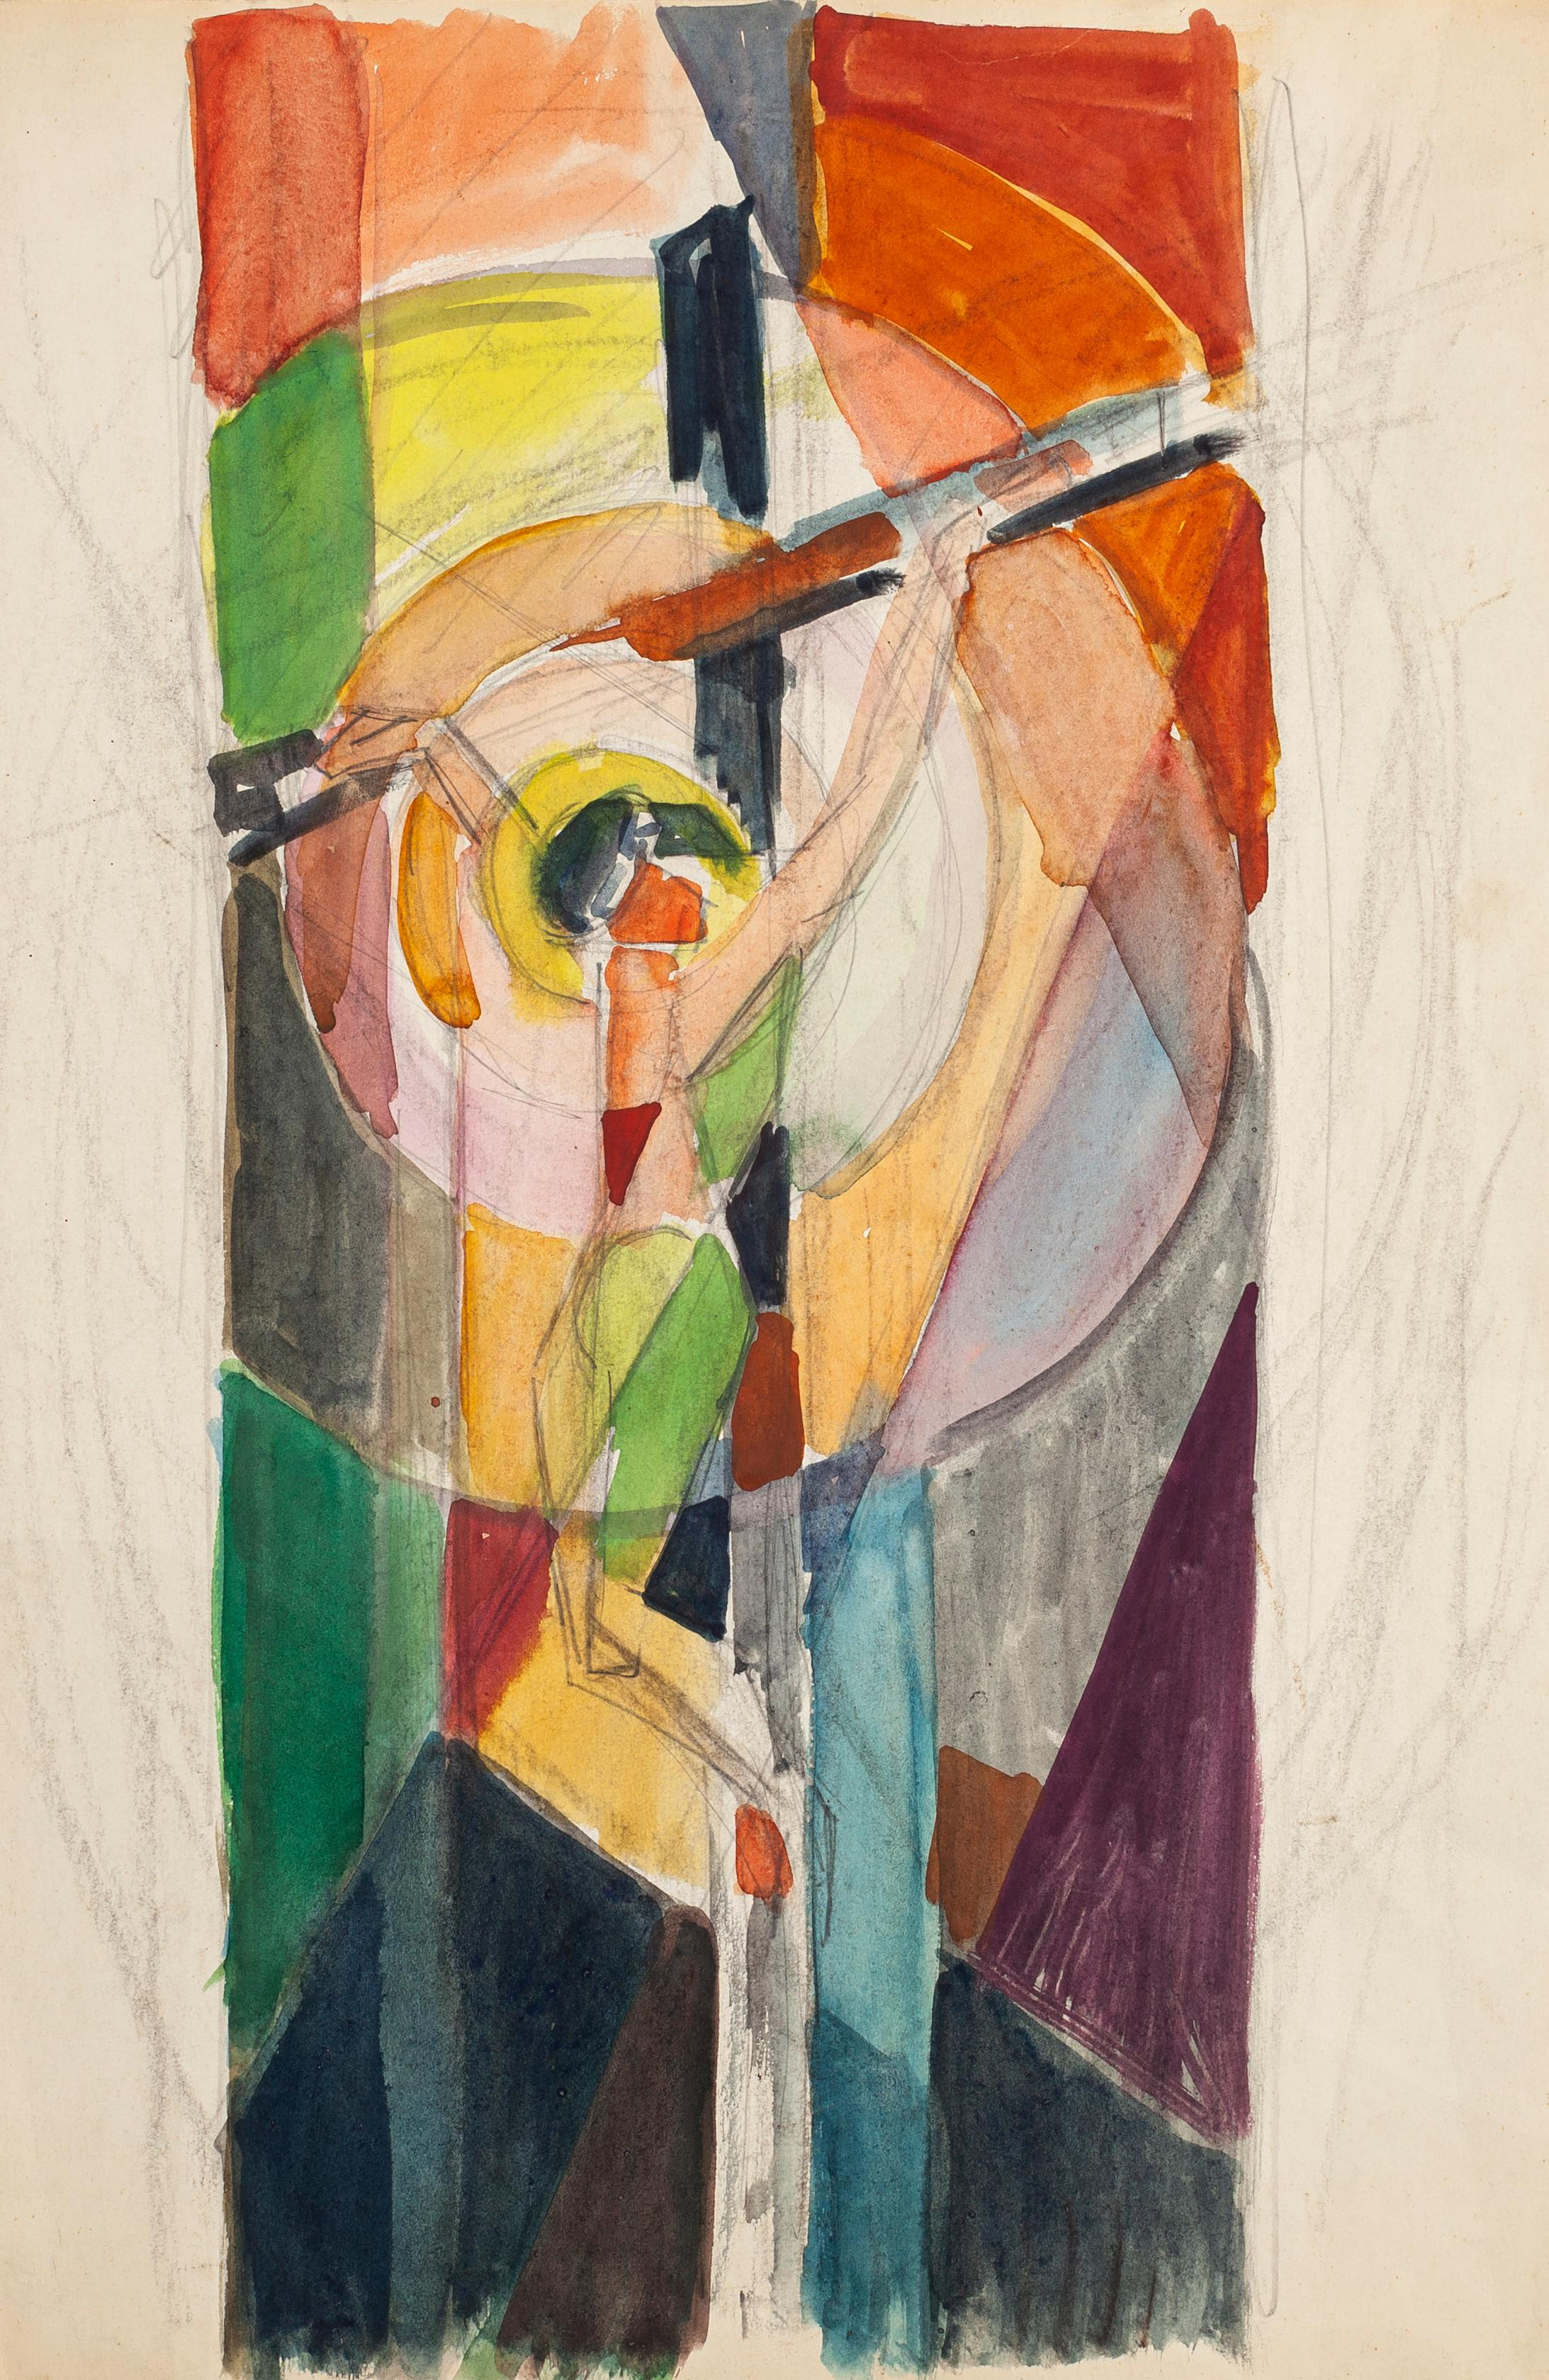 Crucified Christ  - Pencil and Watercolor by Jacques Villon - 1950s